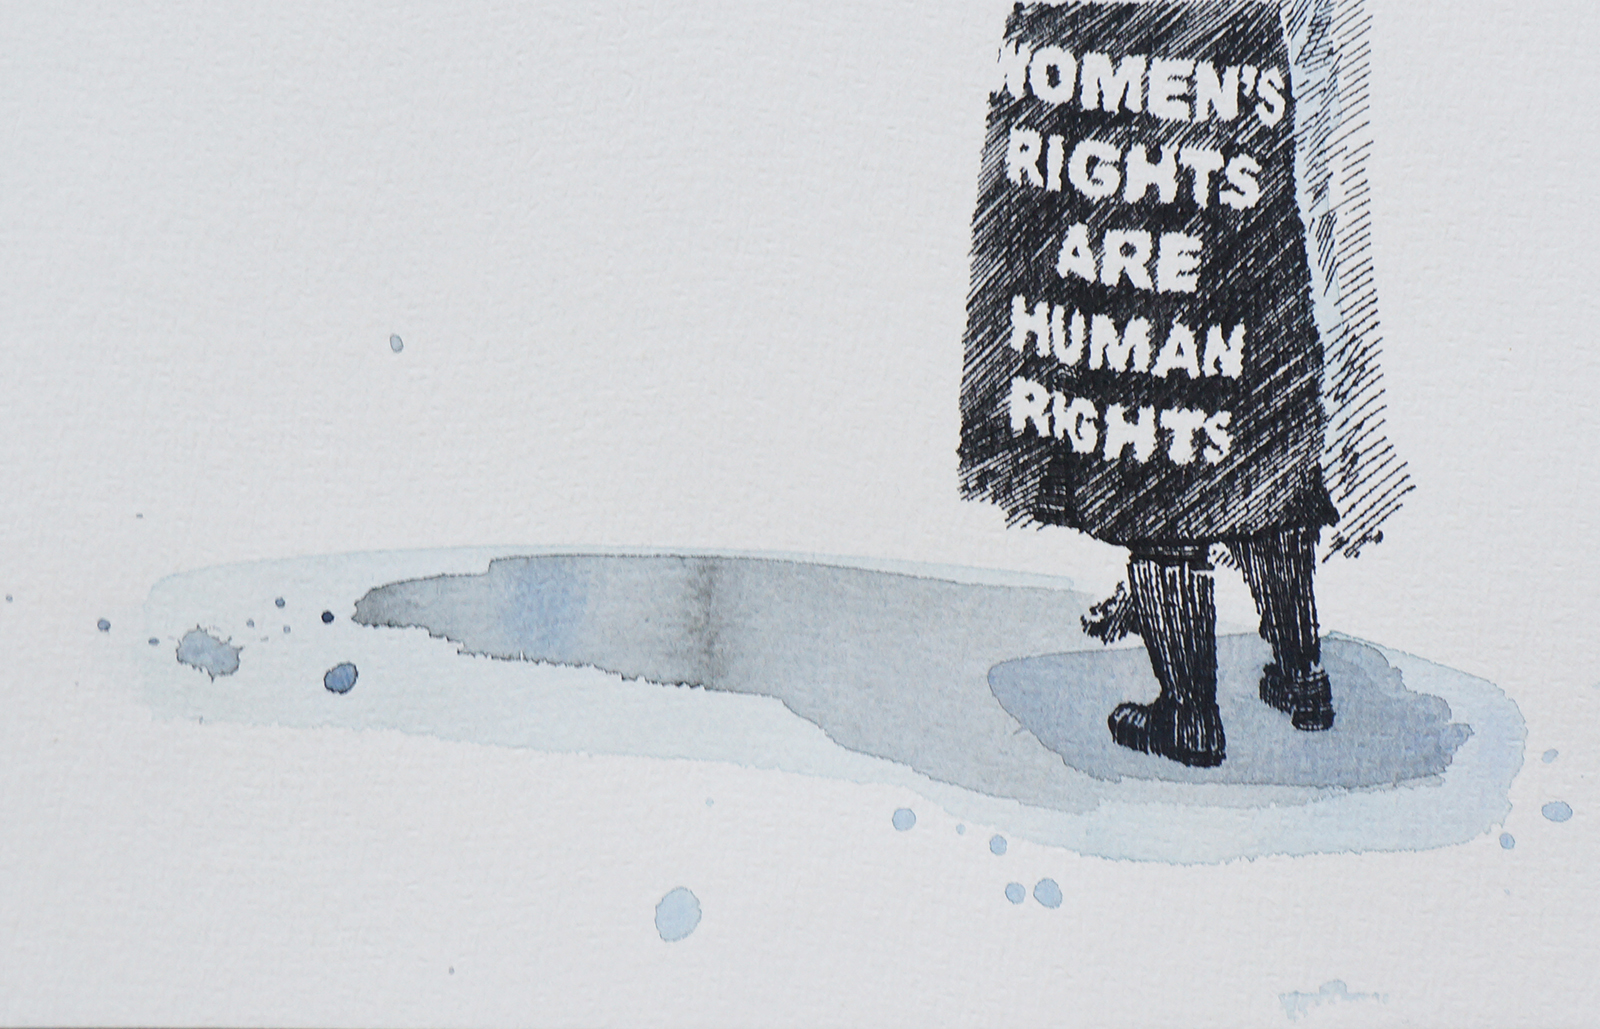 Ape_Bleakney_March Mixed Media - 'Women's Rights (2)', 6.5''x9.5'', Screen Print + Watercolor, 2018 copy.jpg